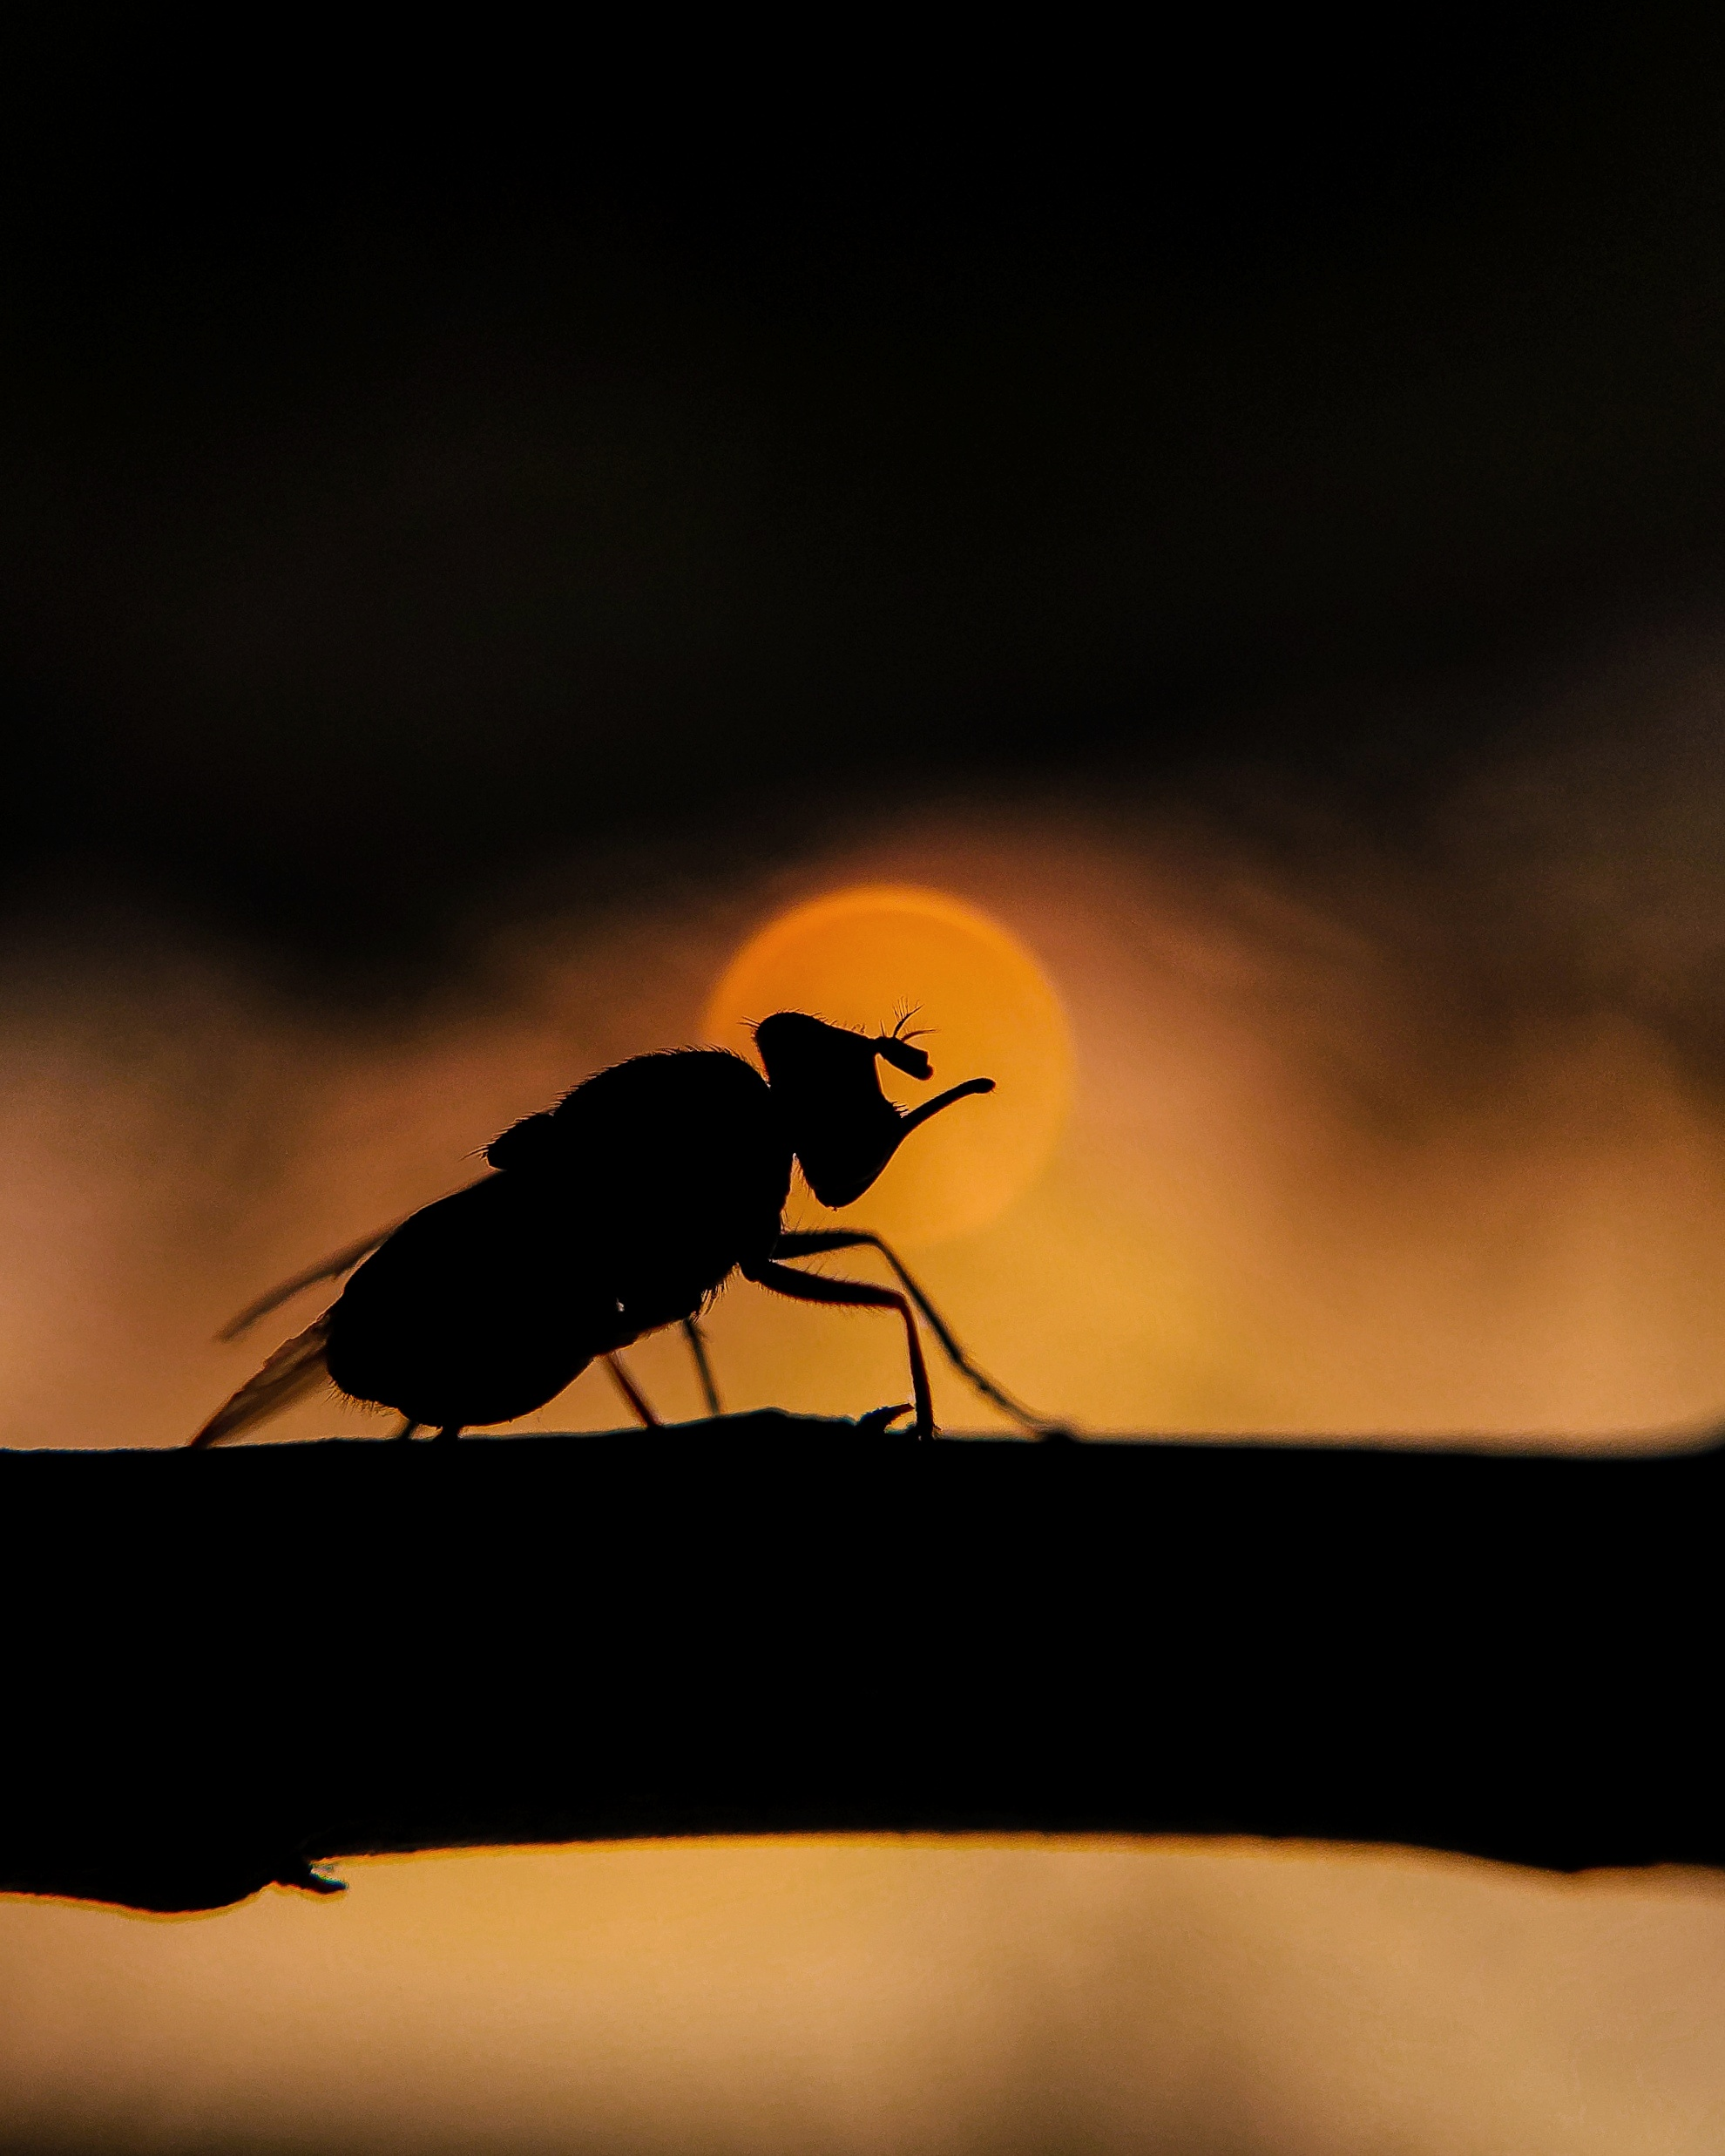 Silhouette of housefly